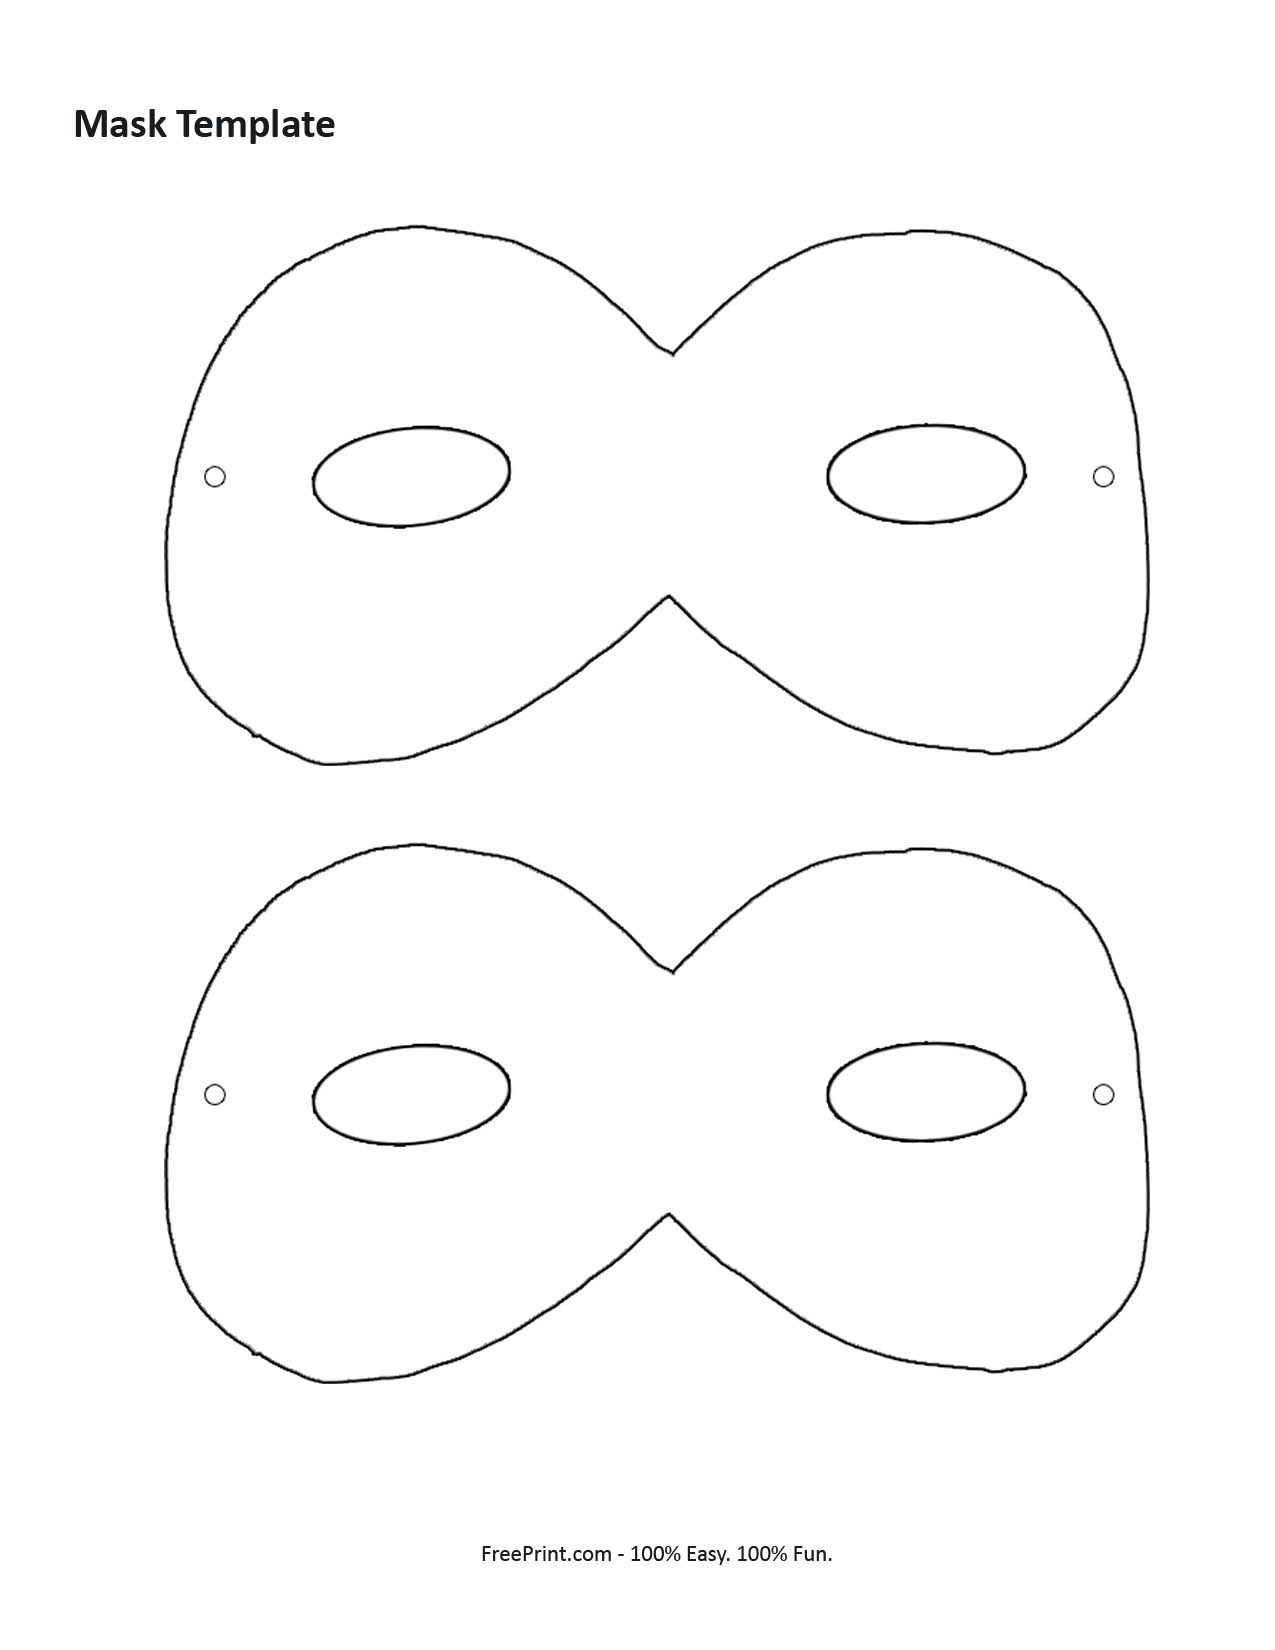 caterpillar mask template - 6 best images of mask printable template masquerade mask